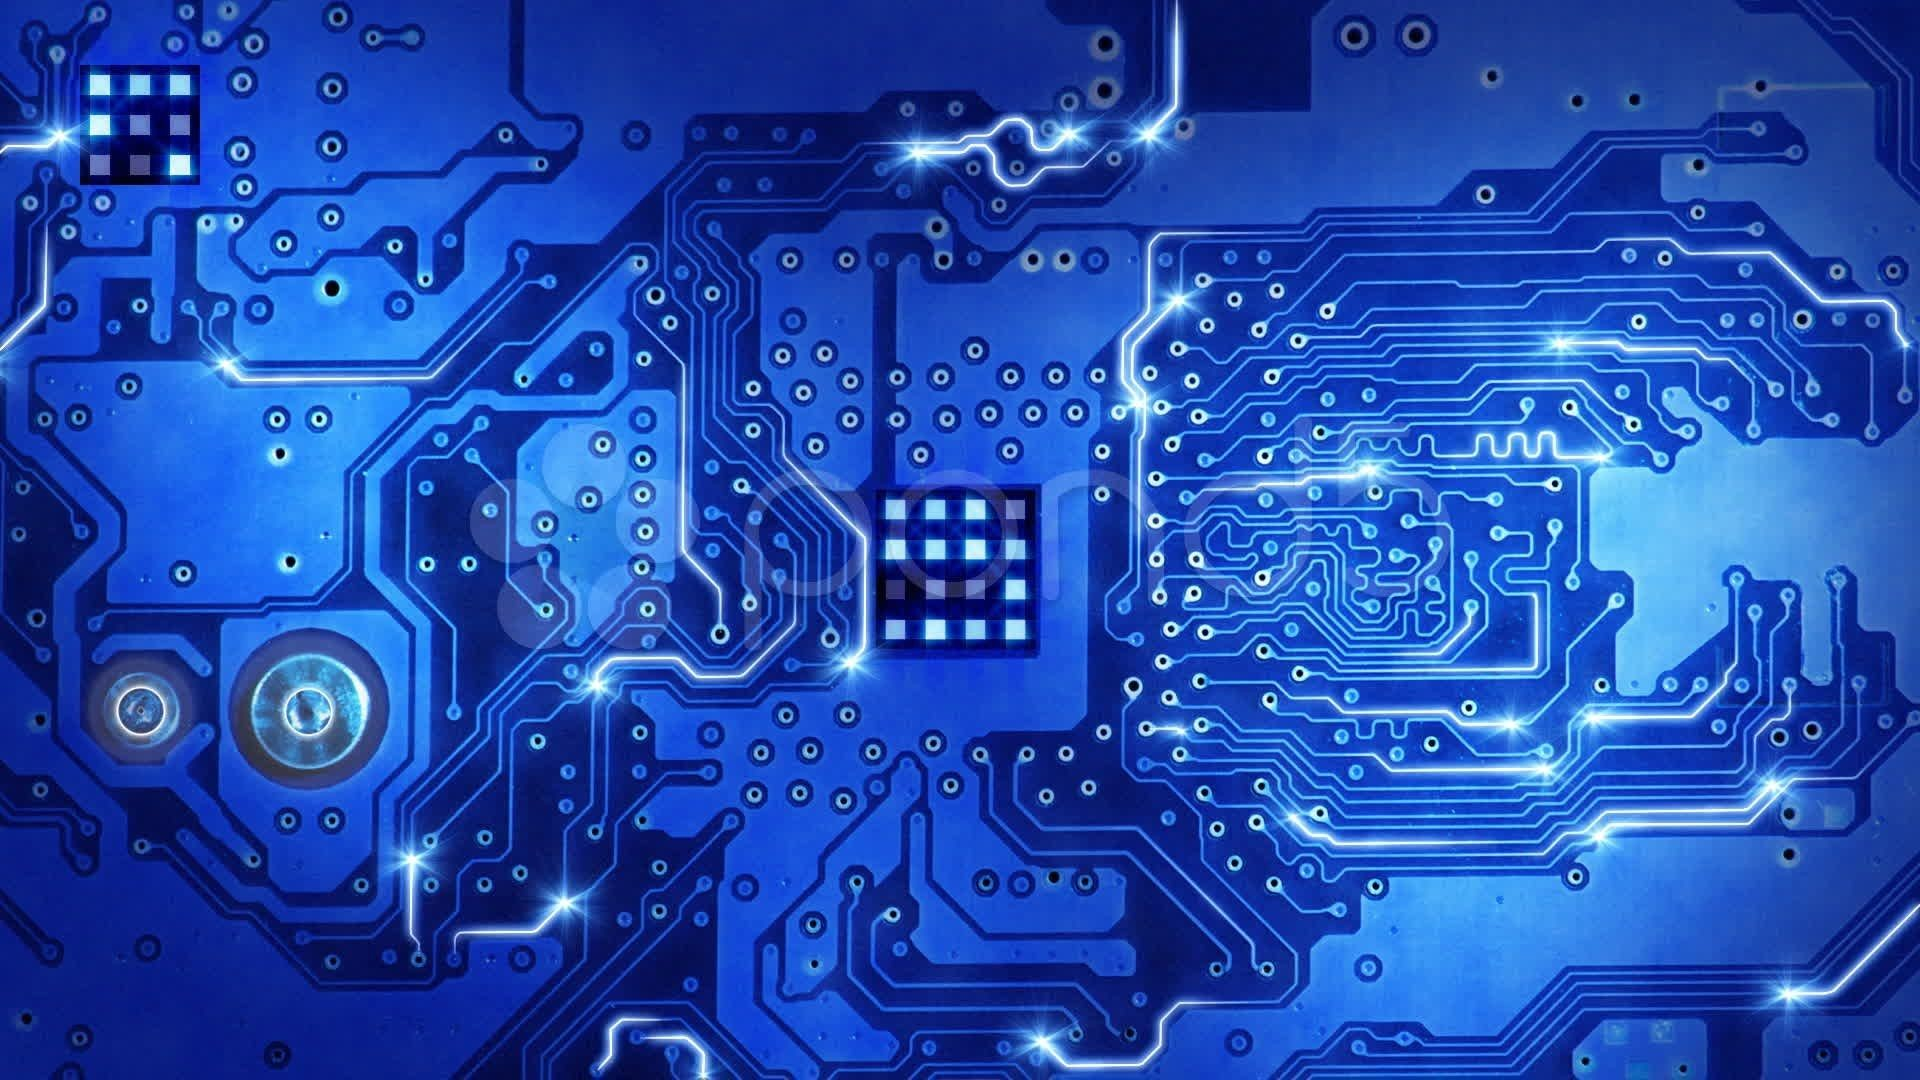 Res: 1920x1080, HD Circuit Board HD Wallpapers and Photos,  - By Juliet Crowder